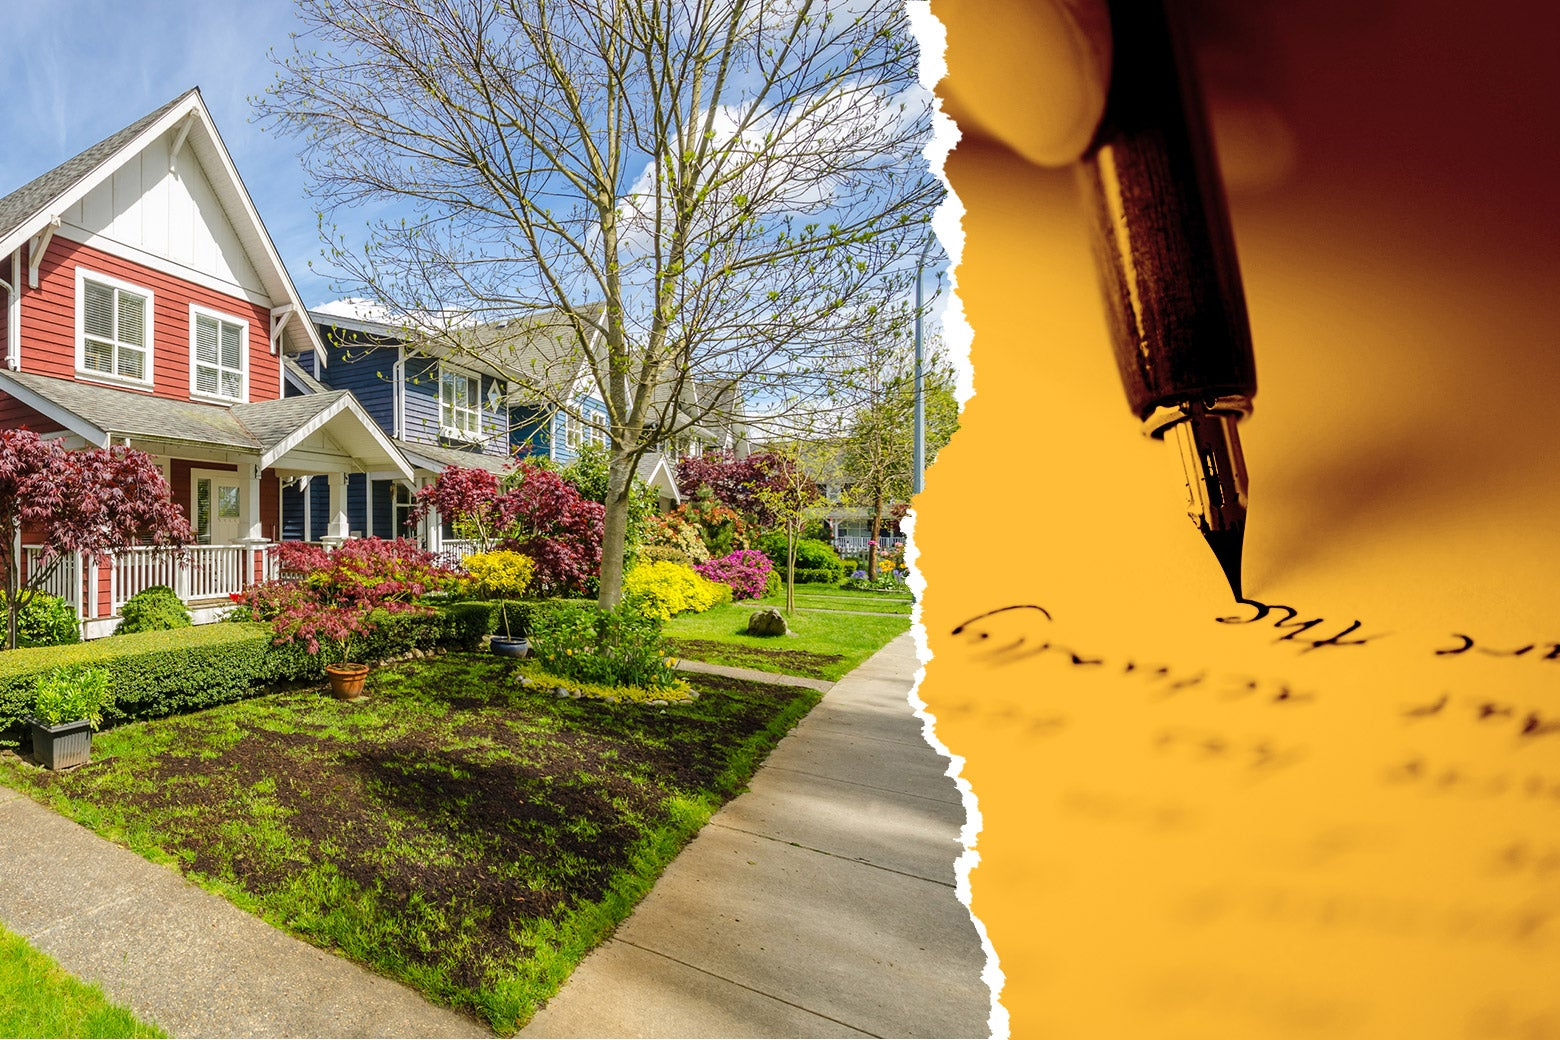 A collage of a quiet suburban neighborhood and a man writing a story.